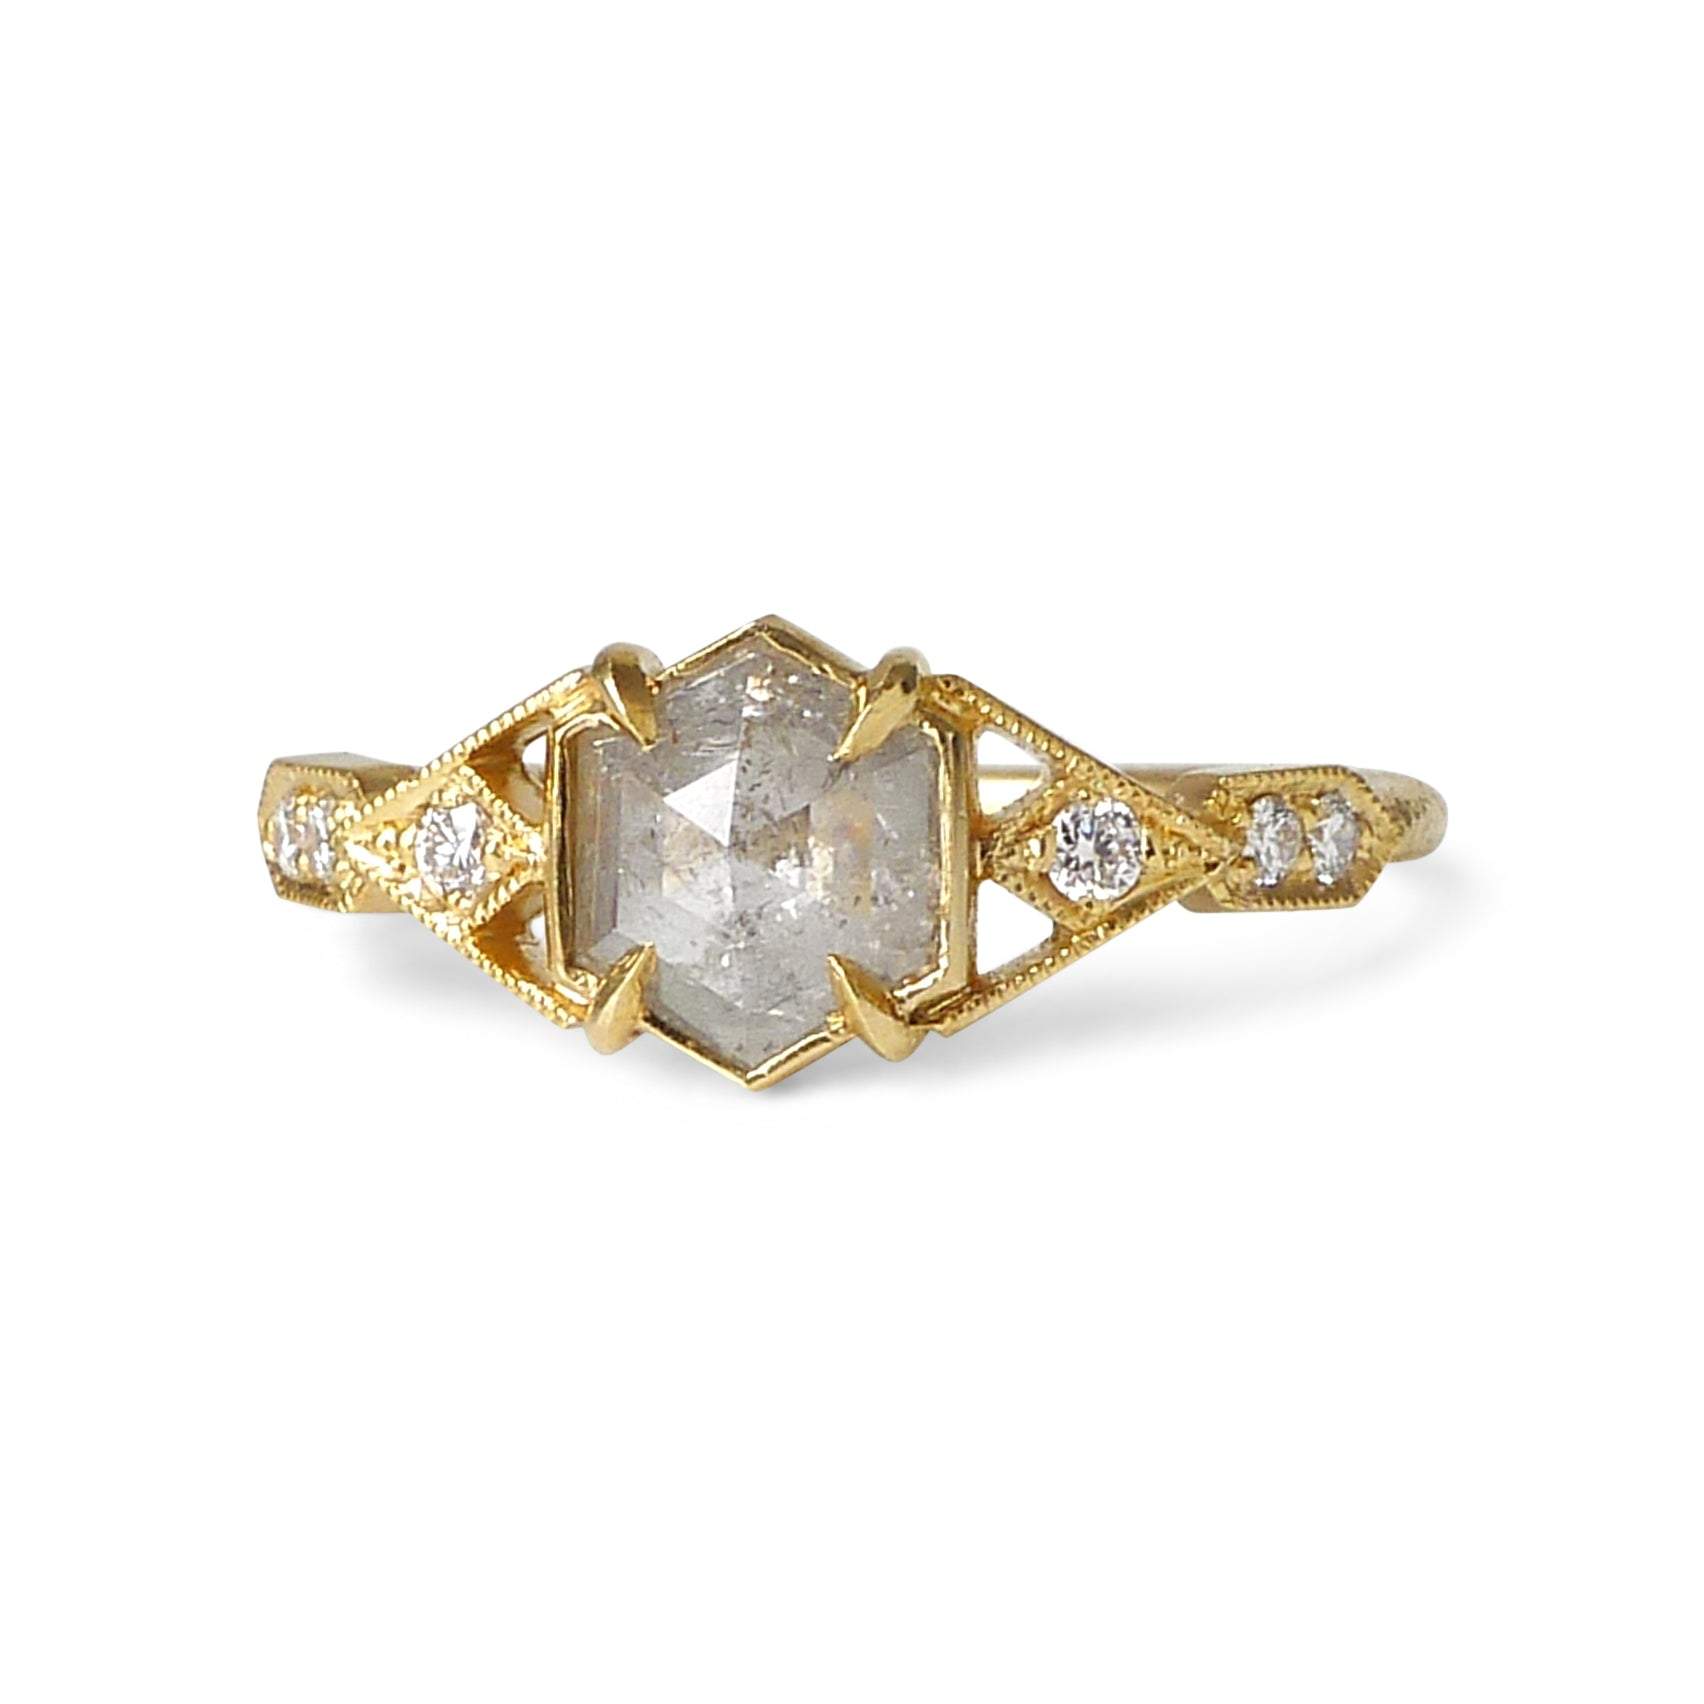 Casia Vestra Ring w/ Icy Gray Diamond